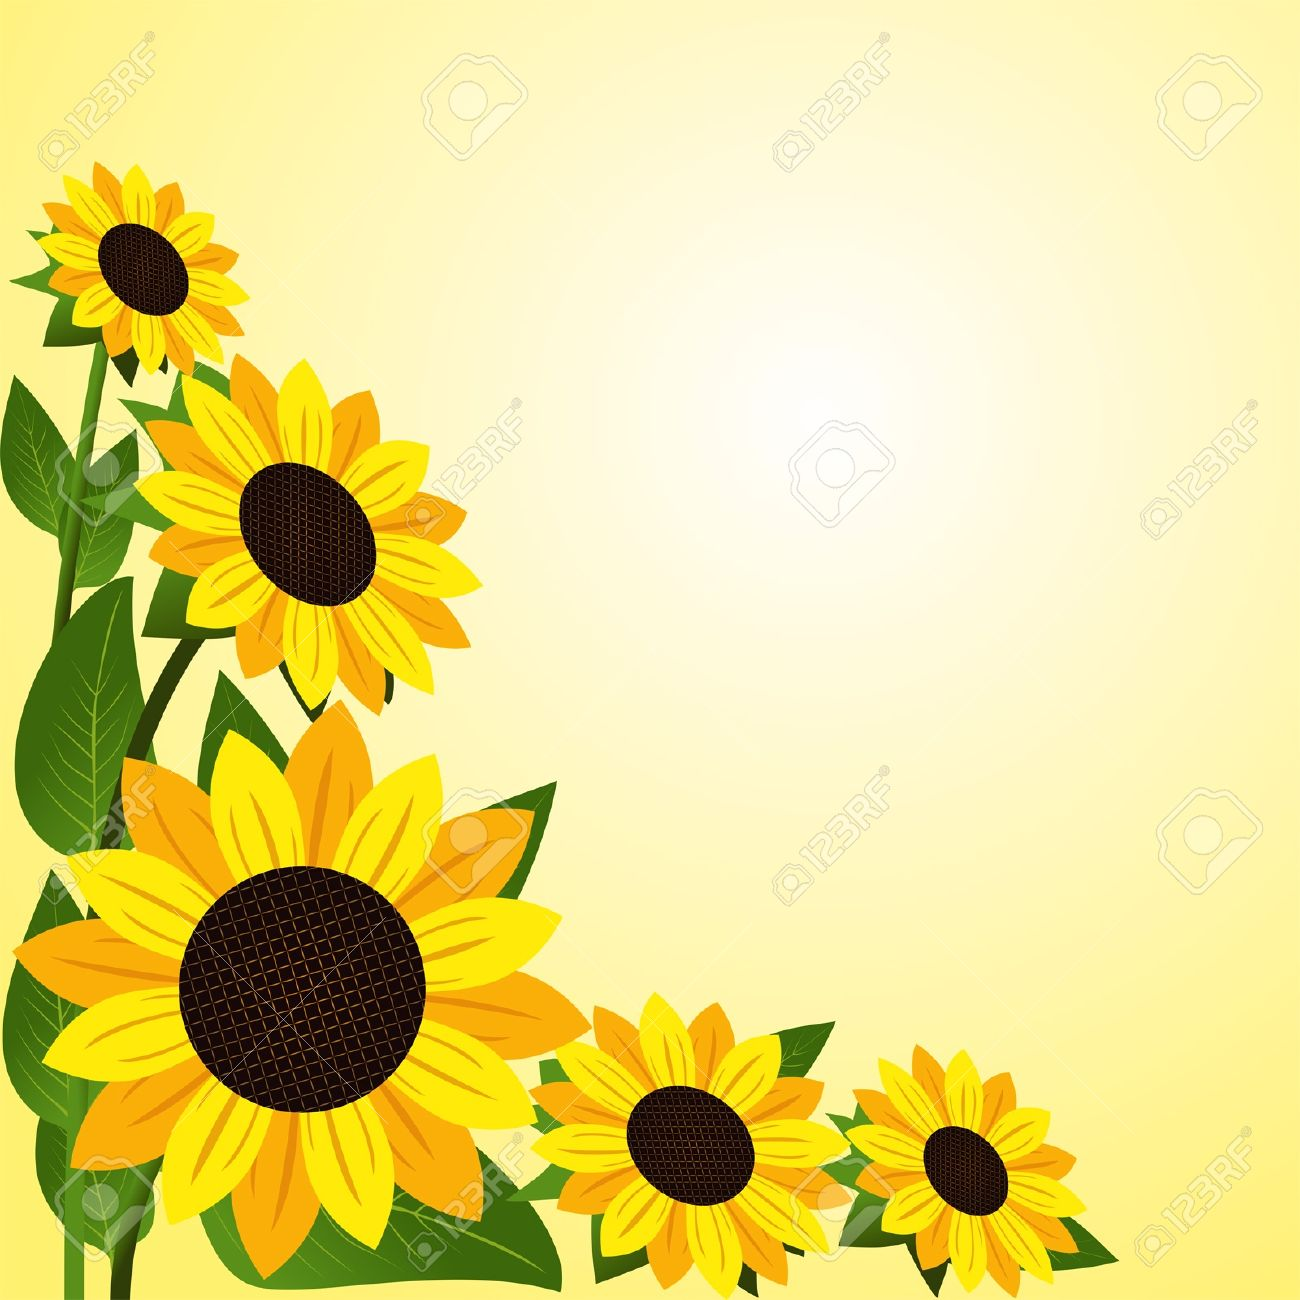 Flower border with Sunflowers - 18703393